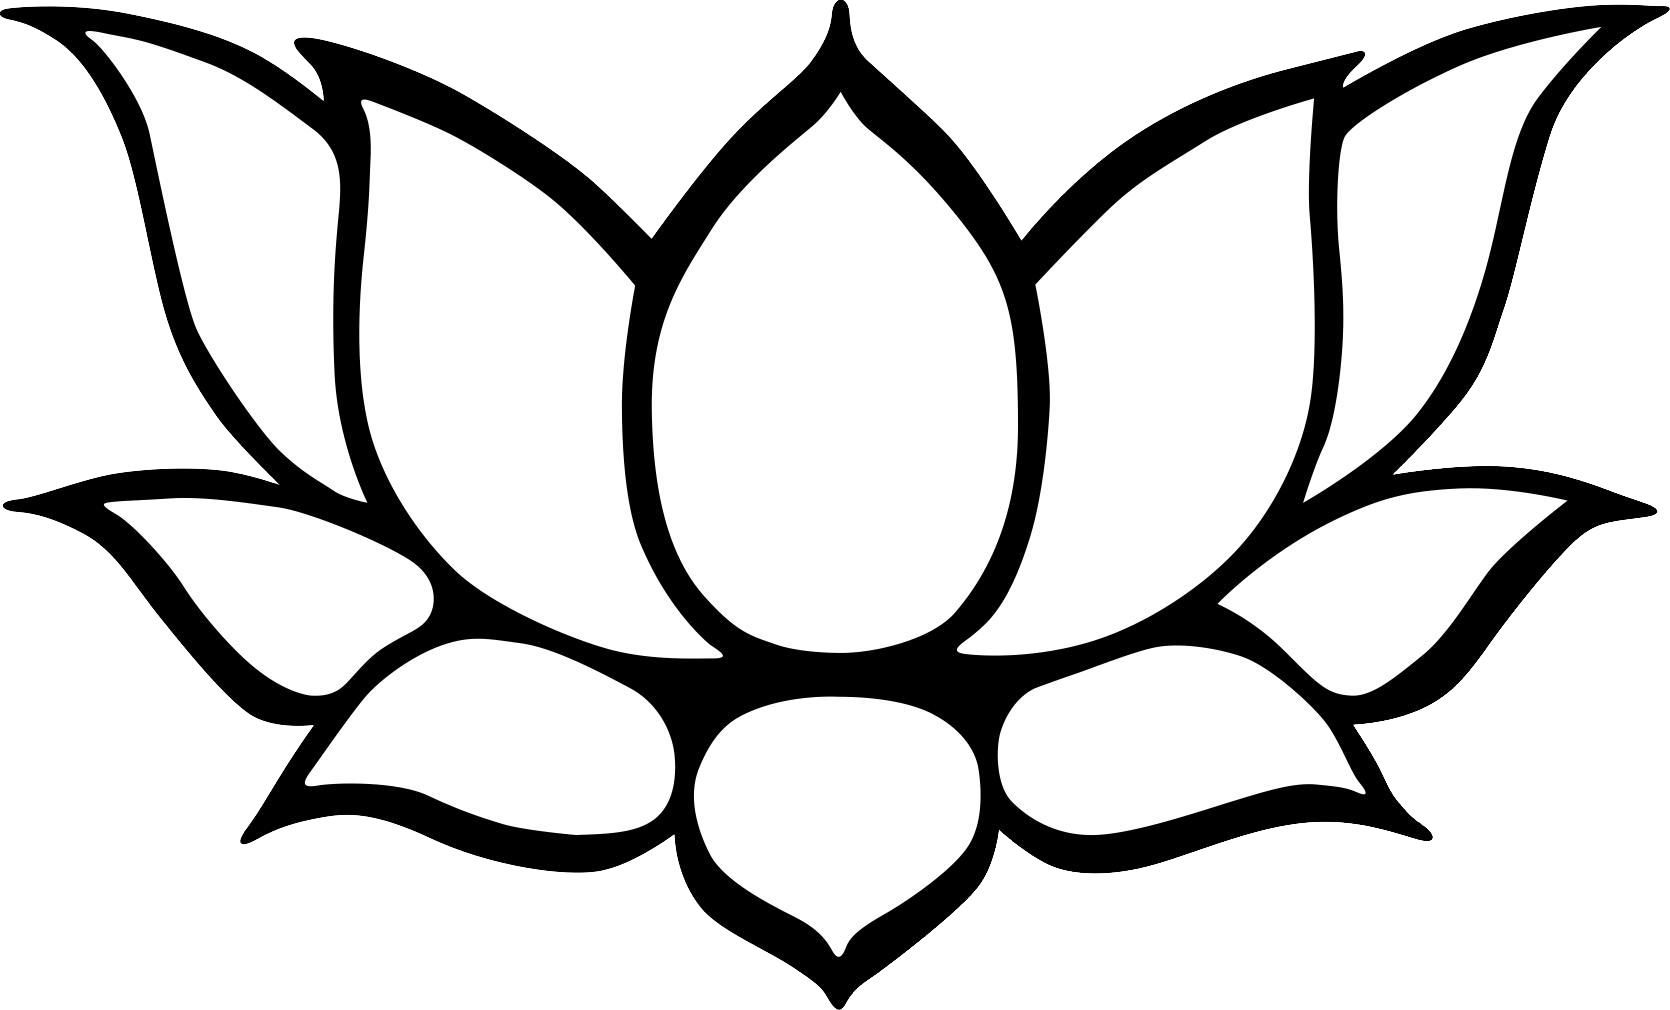 image black and white  collection of kamal. Lotus clipart black and white